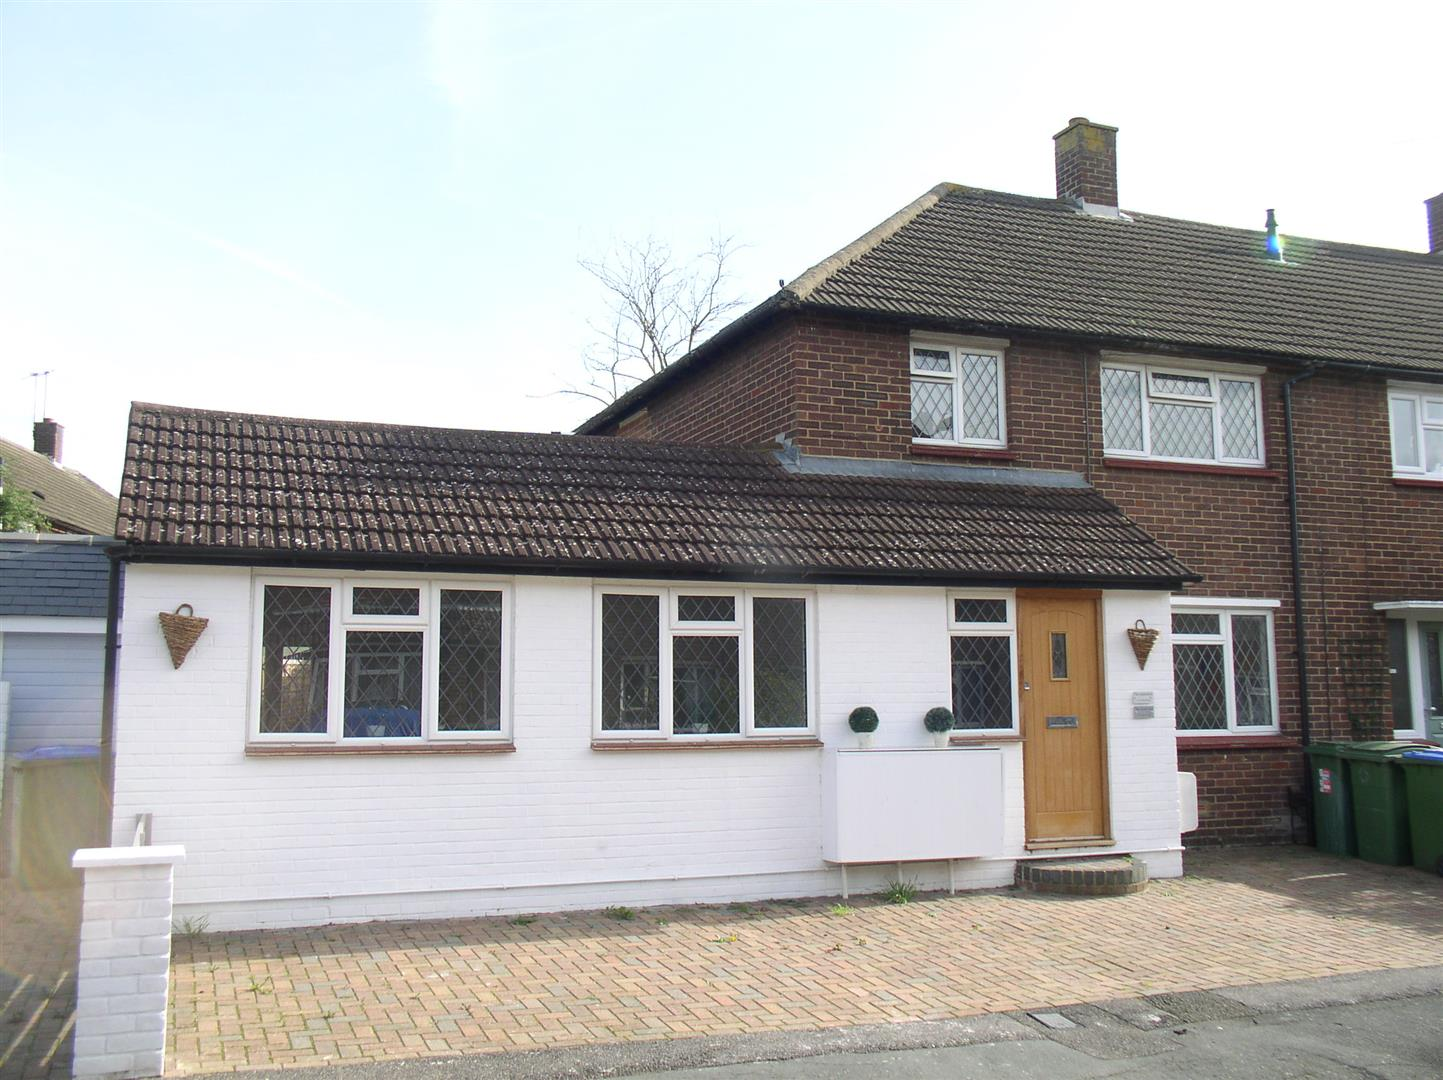 2 Bedrooms House for sale in Carlton Road, Walton-On-Thames